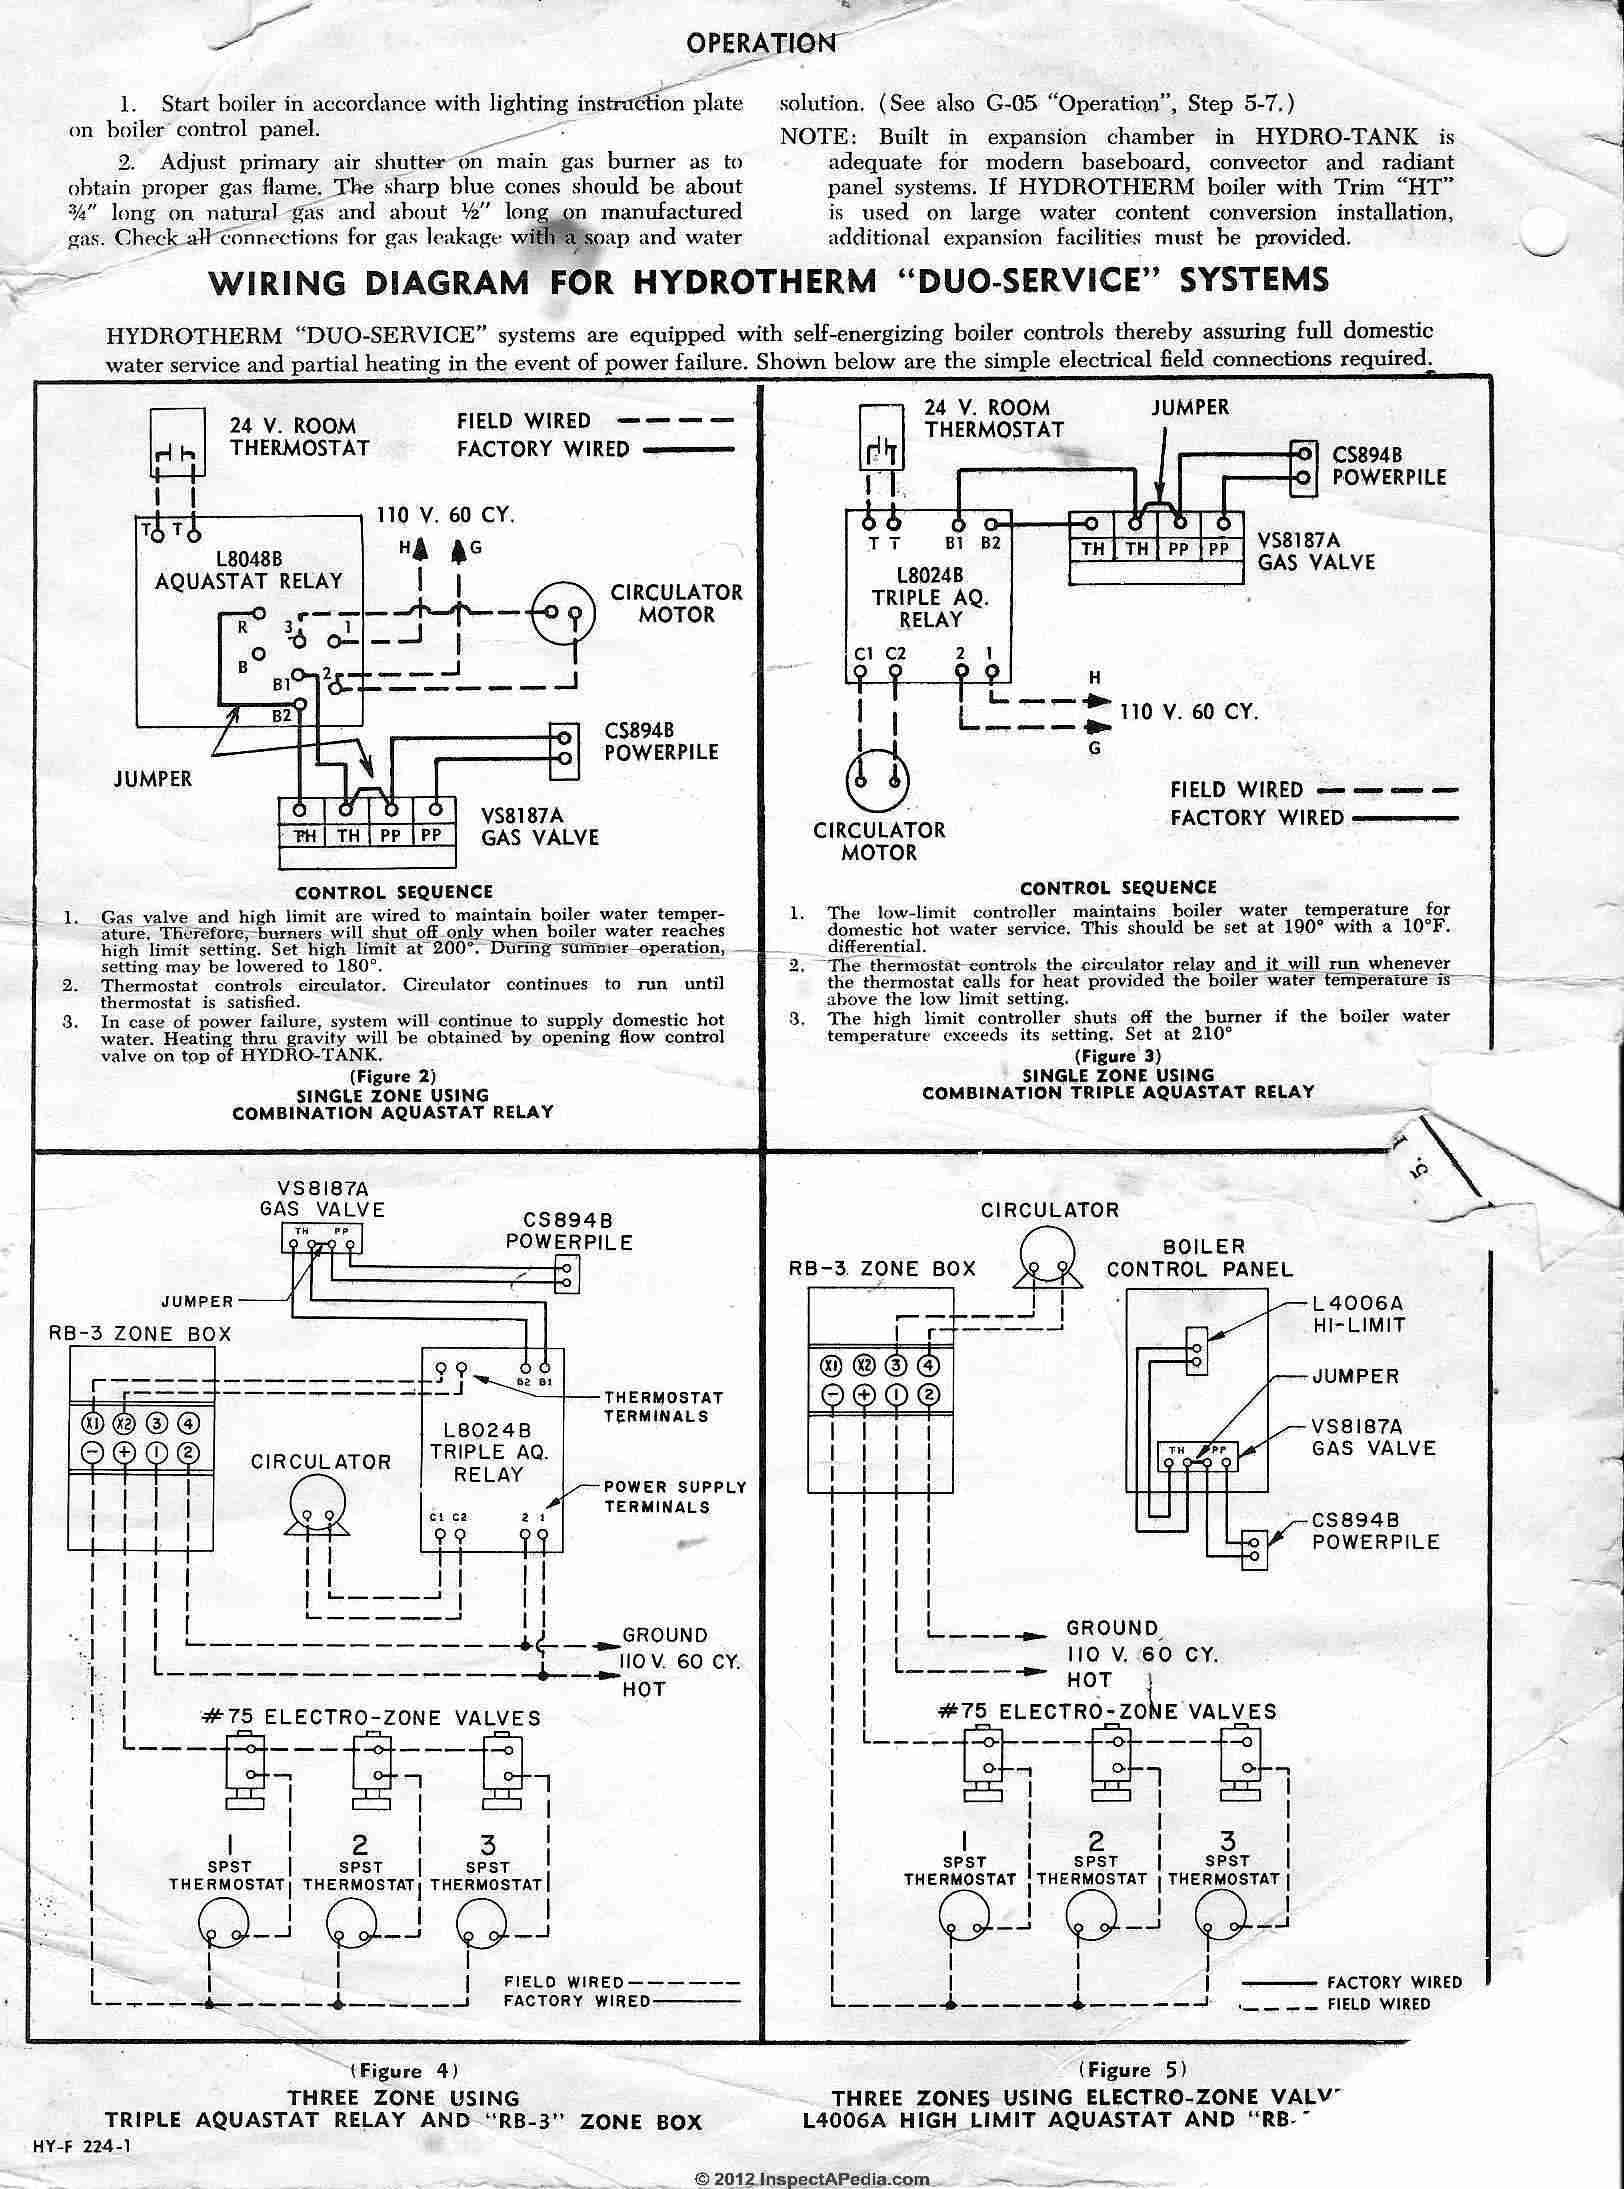 L8024B_Aquastat_0422_DJFcs heating boiler aquastat control diagnosis, troubleshooting, repair imit boiler thermostat wiring diagram at sewacar.co